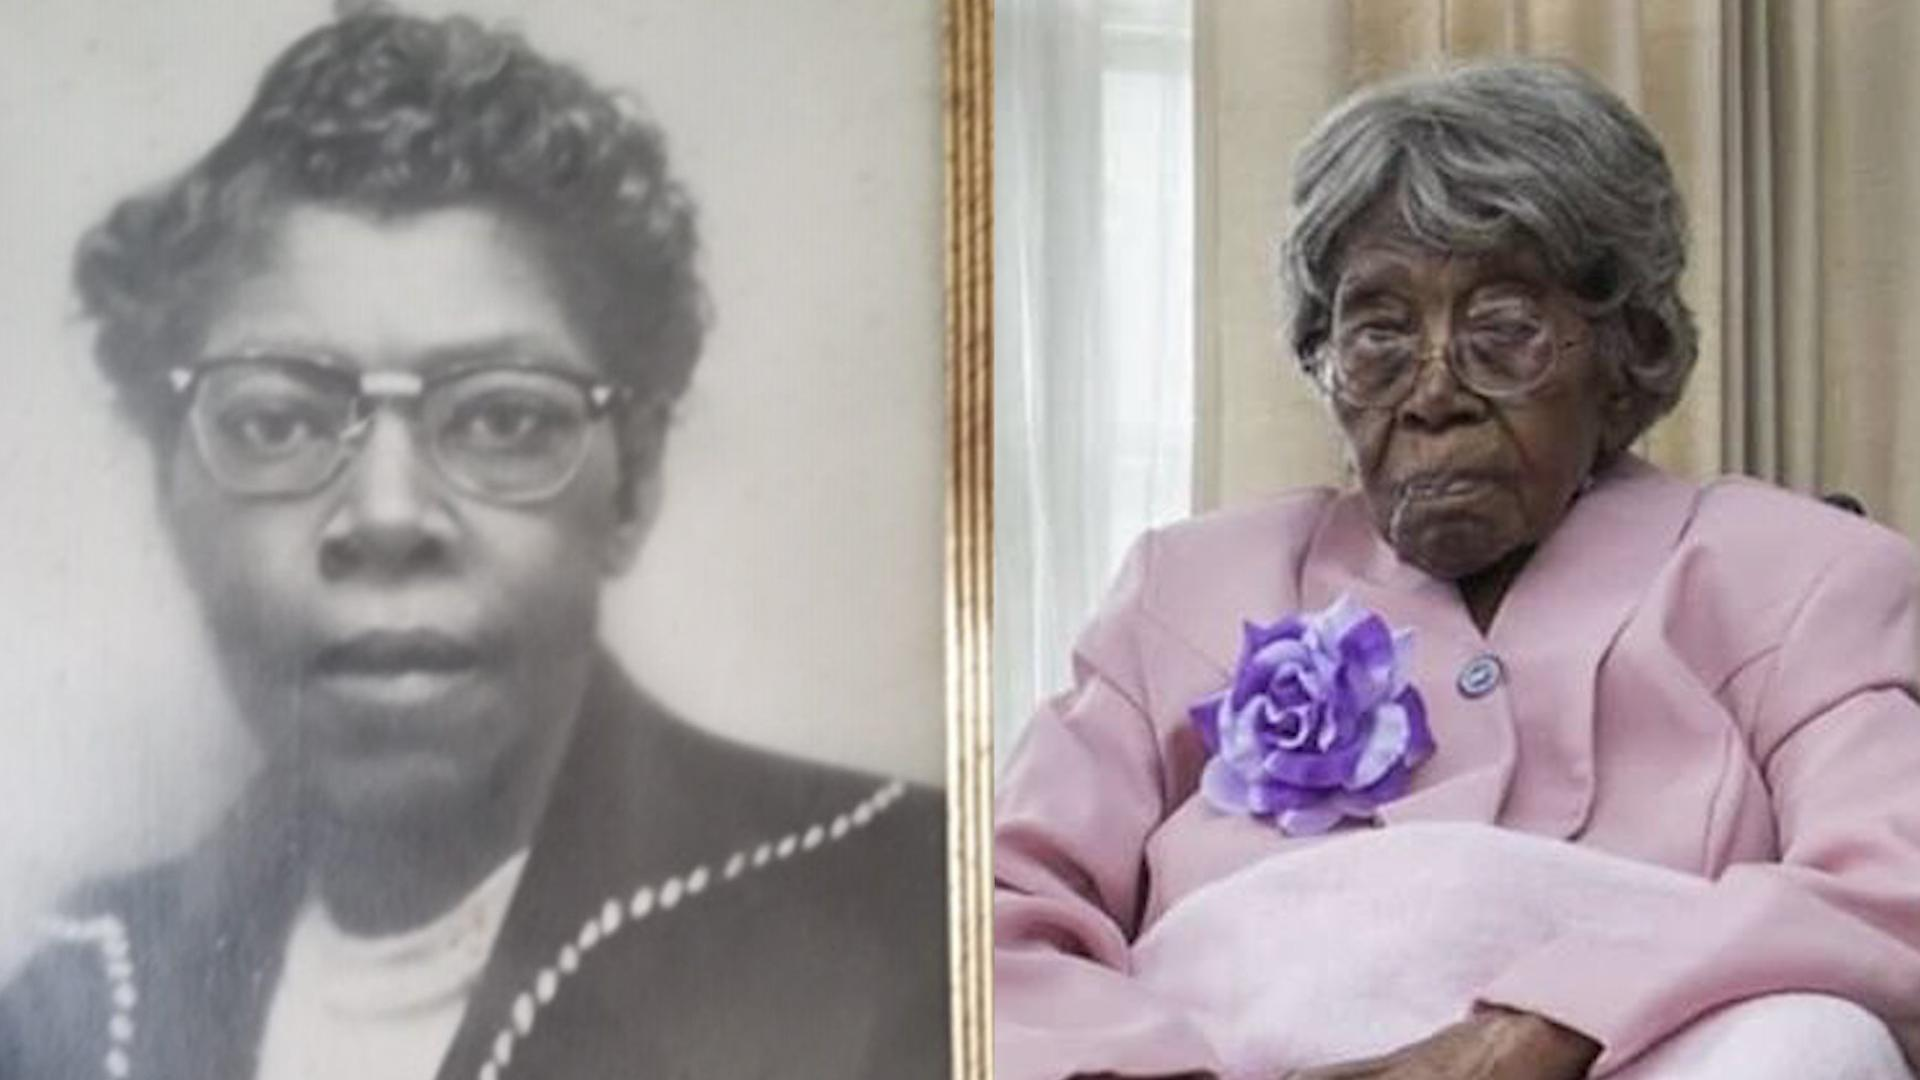 Hester Ford in her youth, left, and today. (Photos courtesy of Mary Hill)